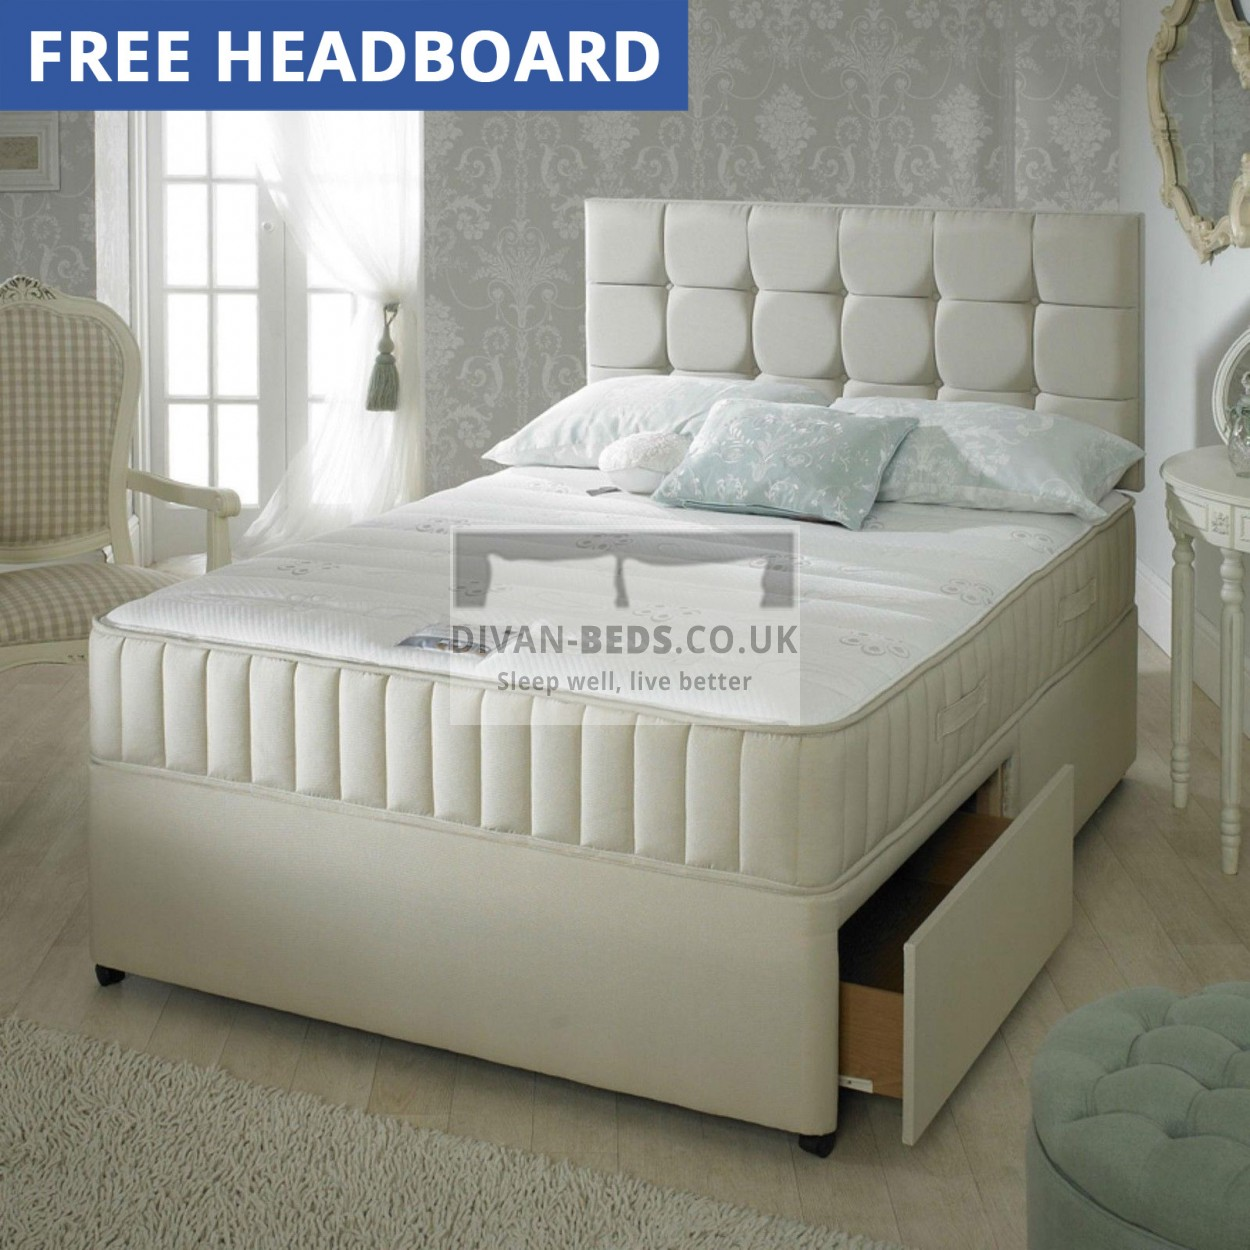 Divan Bed And Mattress Deals Carlton Leather Divan Bed With 1500 Pocket Spring Memory Foam Mattress